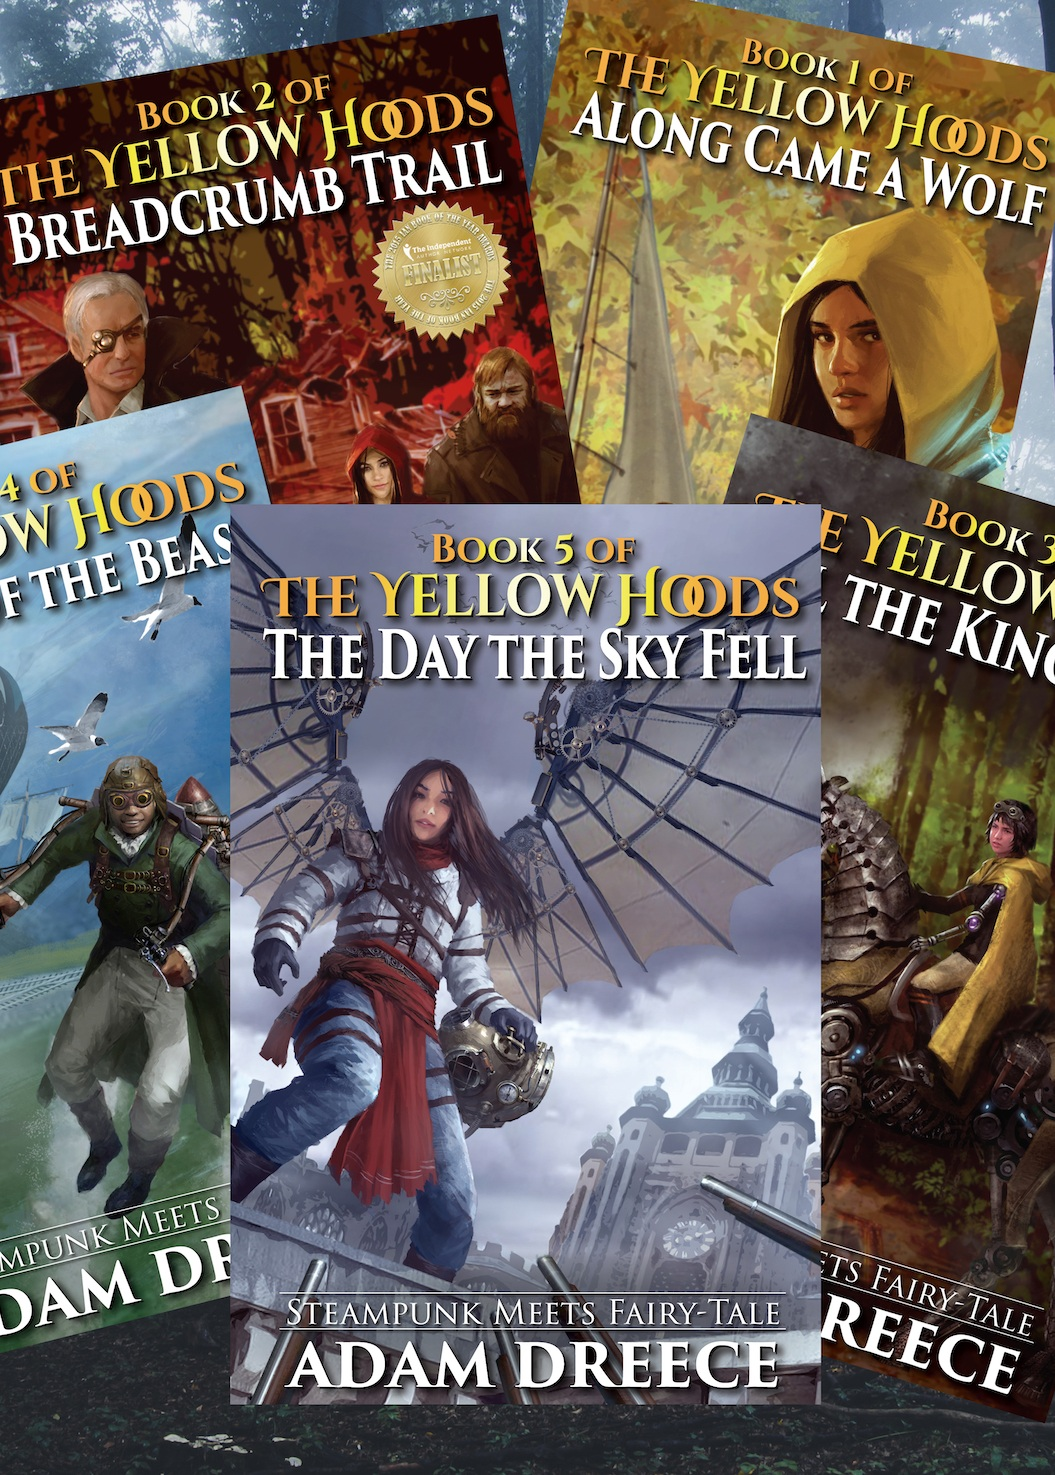 Author - Fantasy, science fiction, fairy tales, and space opera, my books will capture the heart of kids and adults alike. Discover The Yellow Hoods, The Wizard Killer, and all the rest of my books (released and to come). PLUS free samples! And who doesn't love a free sample?.